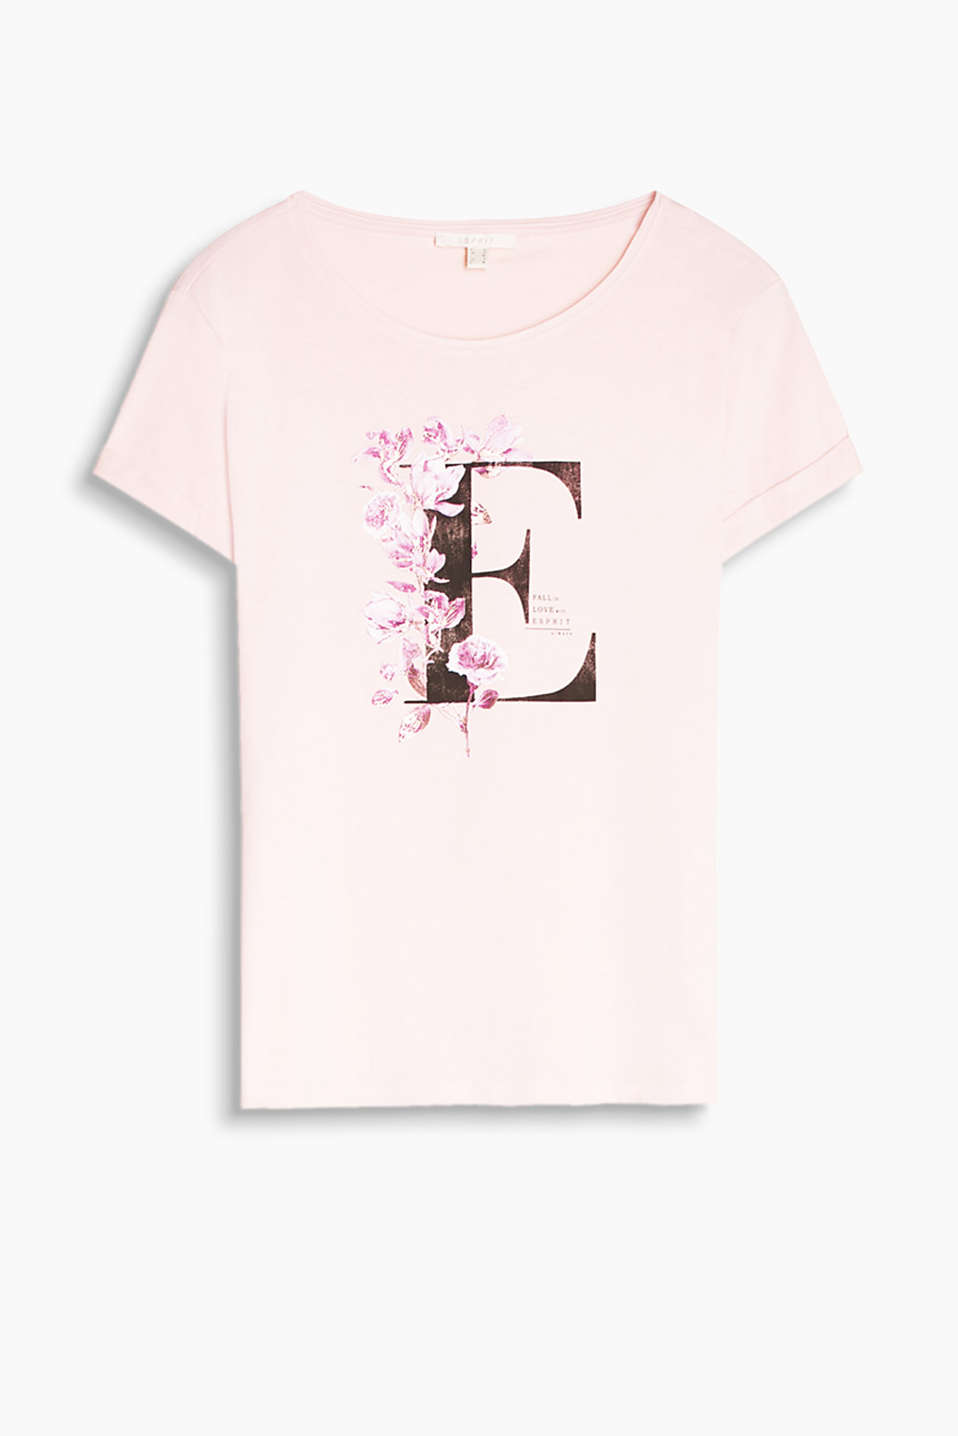 Loose, round neck T-shirt made of pure cotton with a romantic rose/letter print